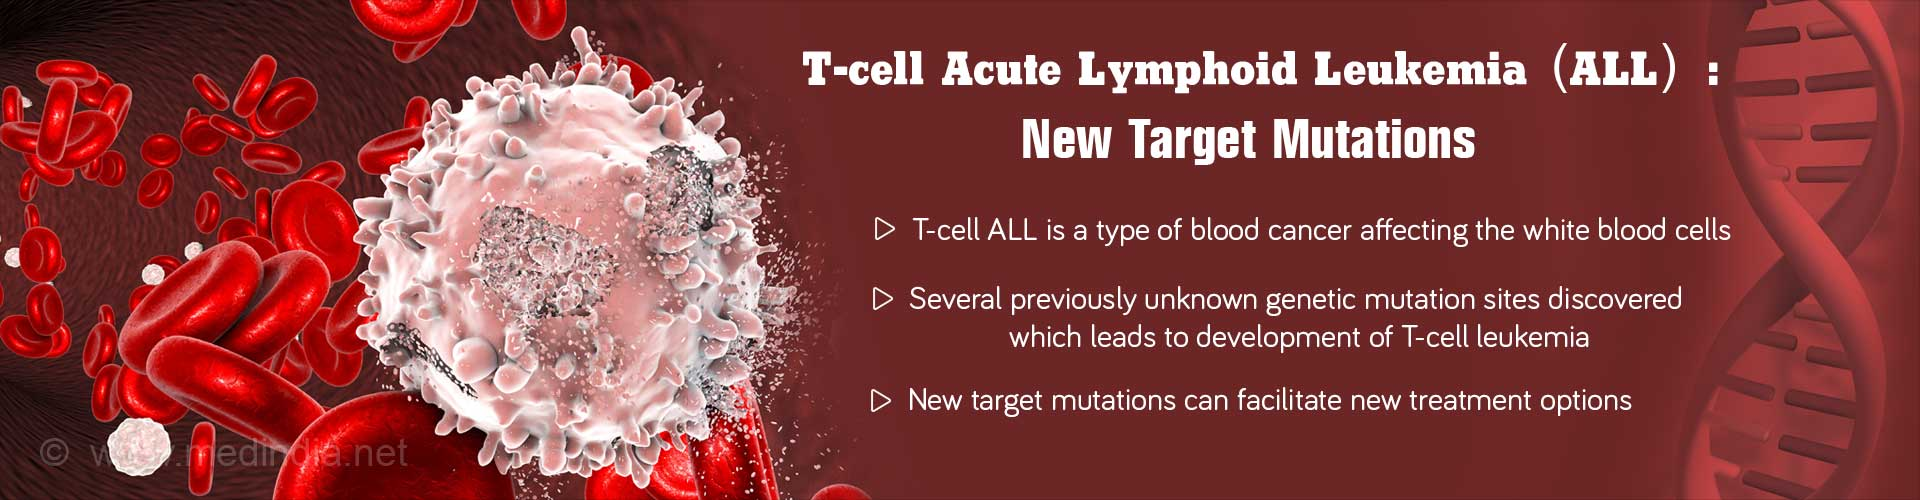 New T-cell Leukemia Target Mutations Identified